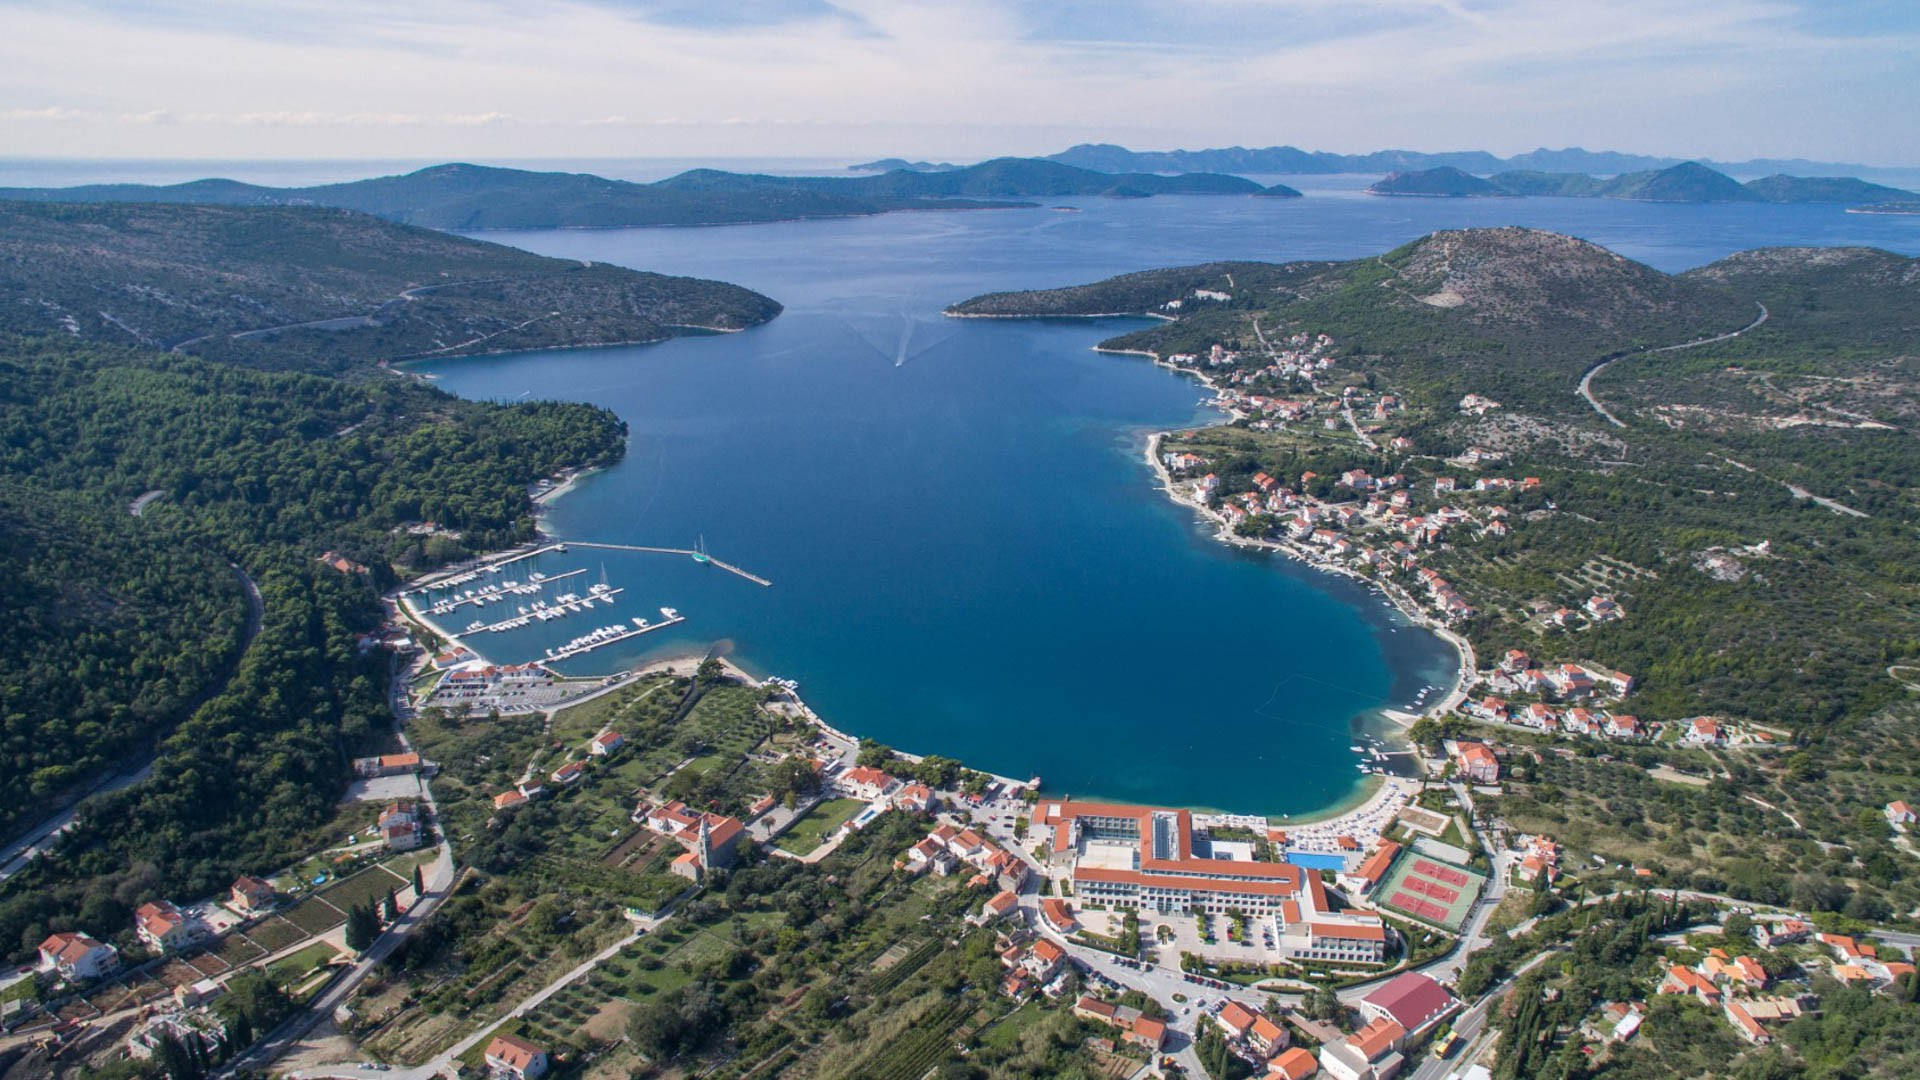 Slano - Adriatic Sea | Croatia Cruise Croatia Cruise